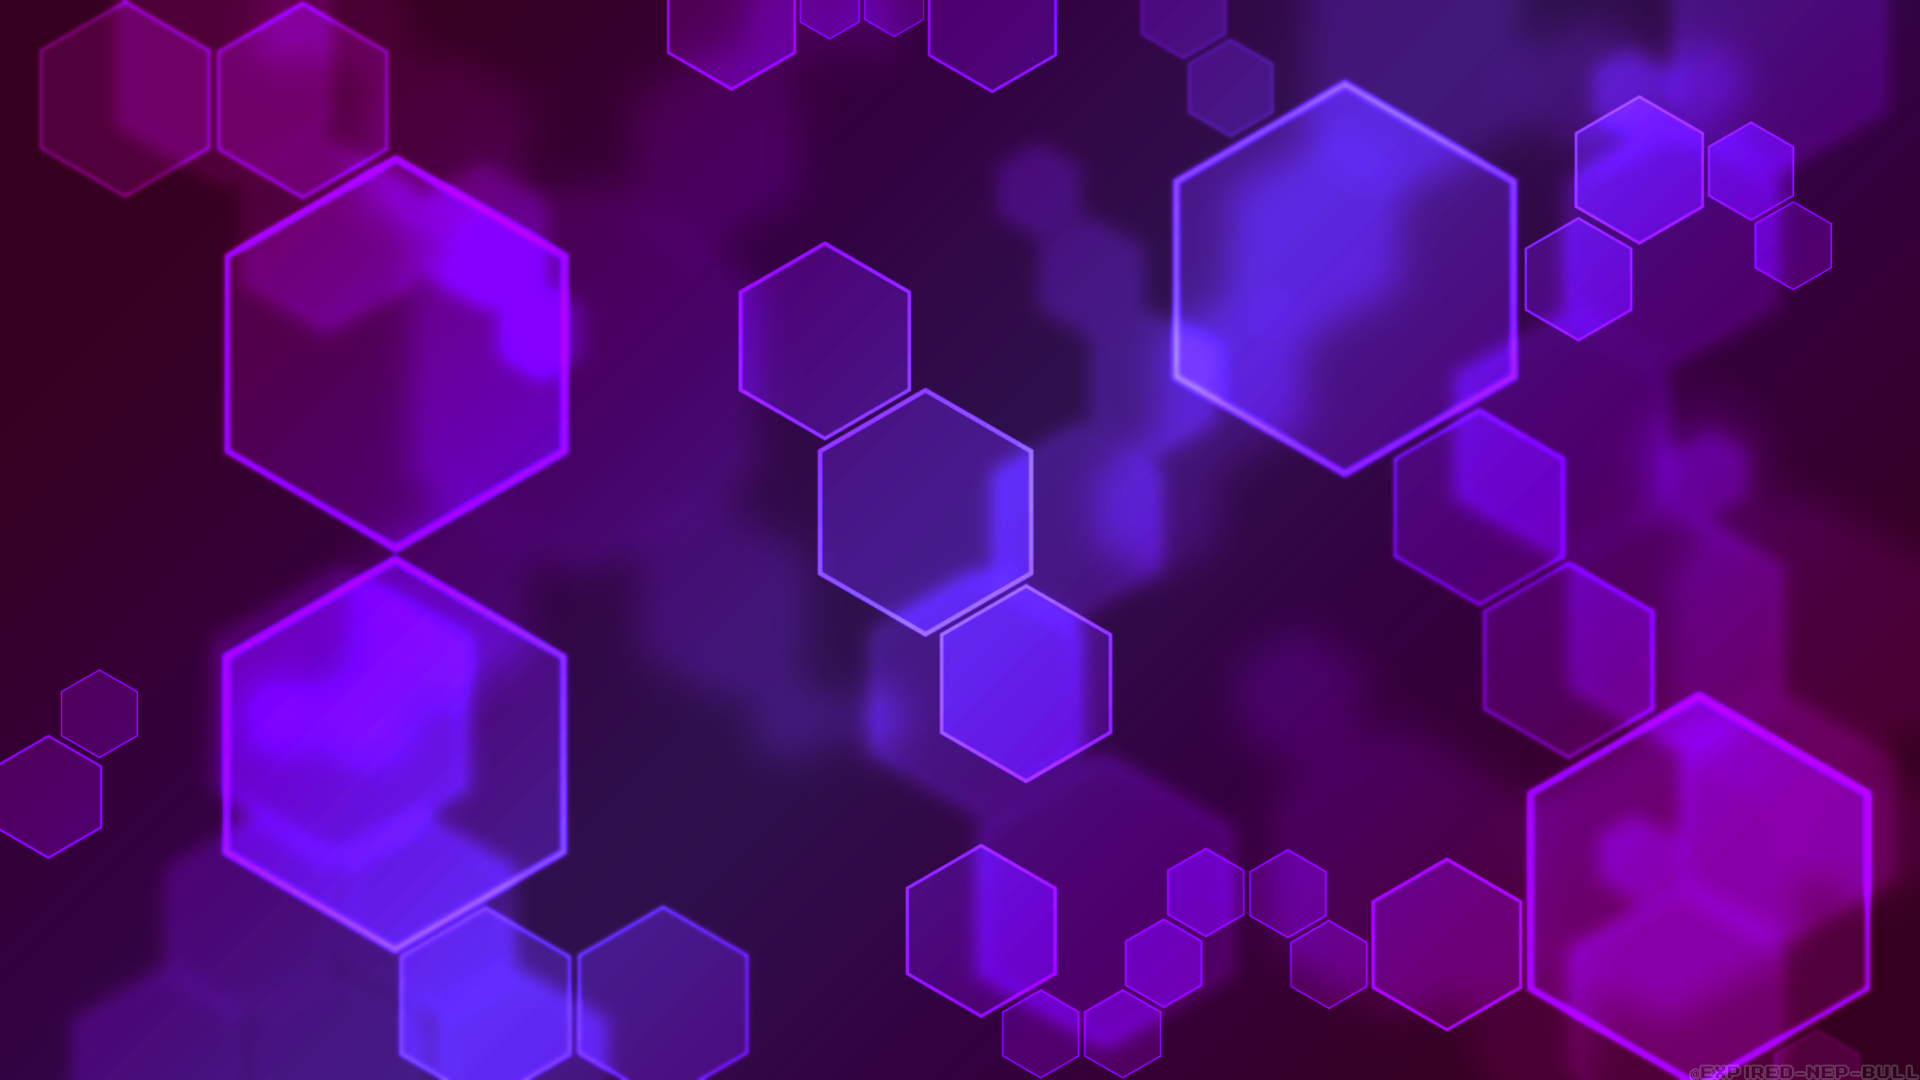 Purple Deep Pink Hexagon Abstract Wallpaper By Expired Nep